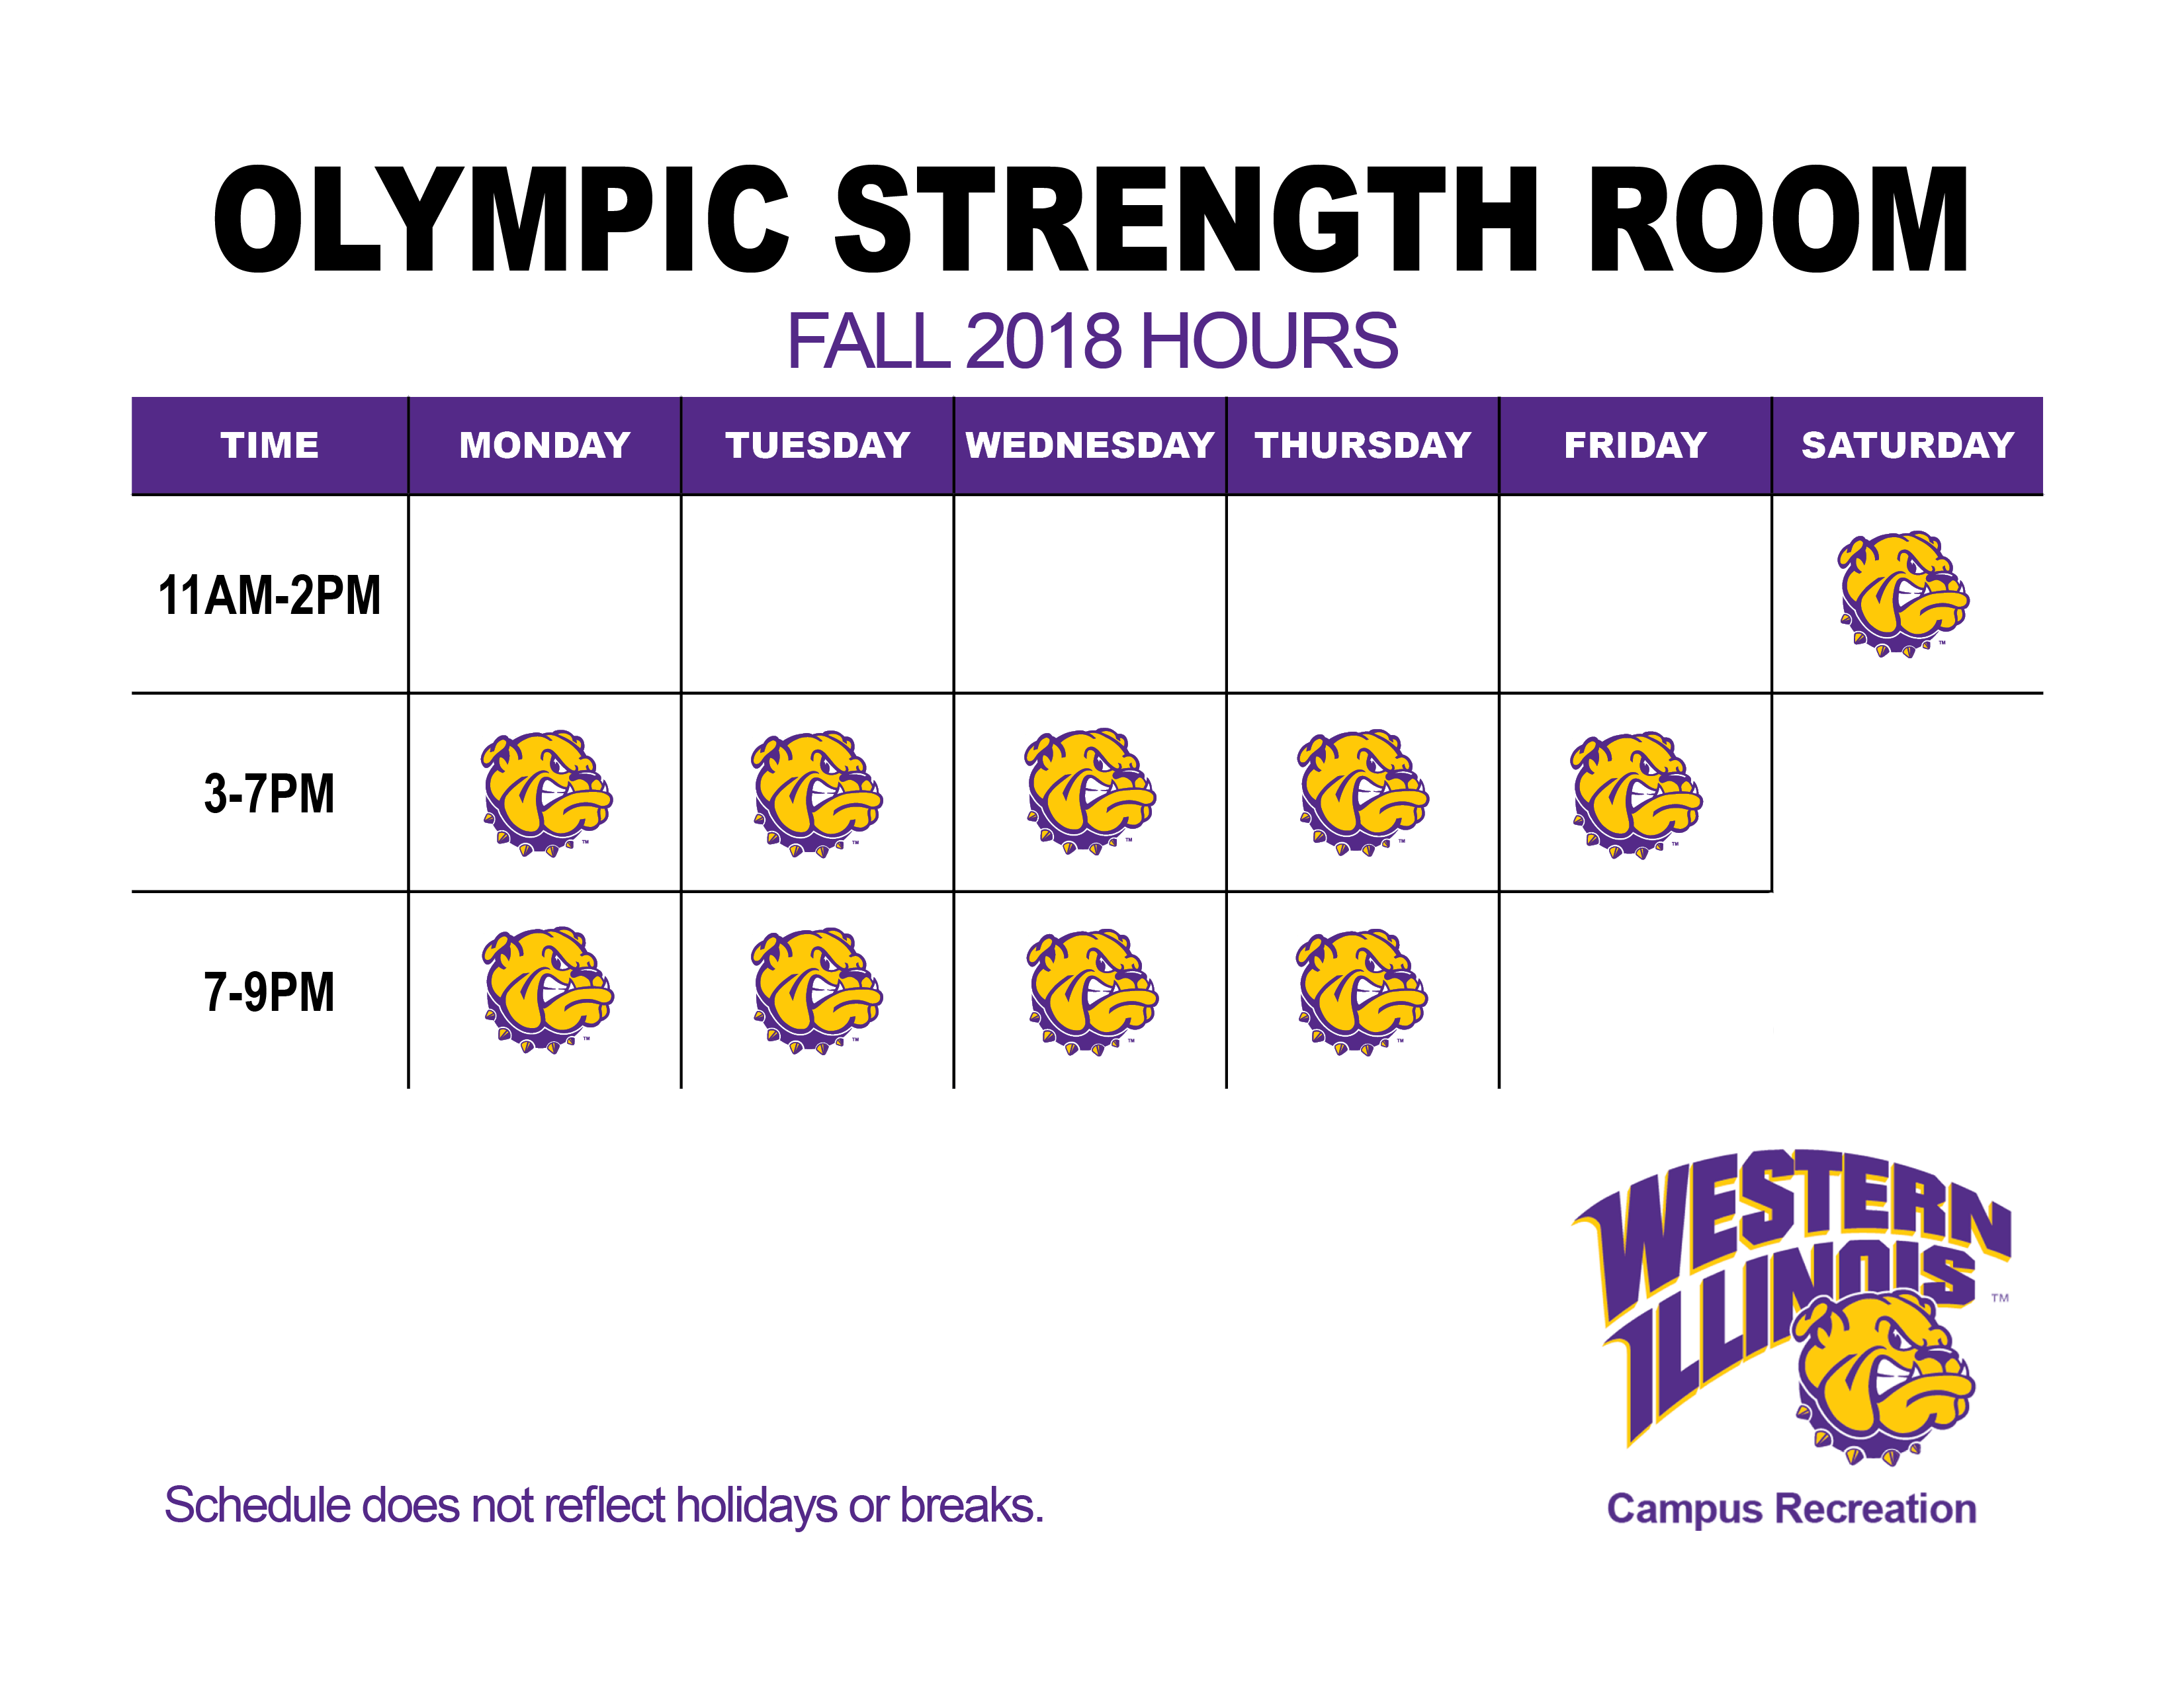 Olympic Strength Room Fall 2018 Hours